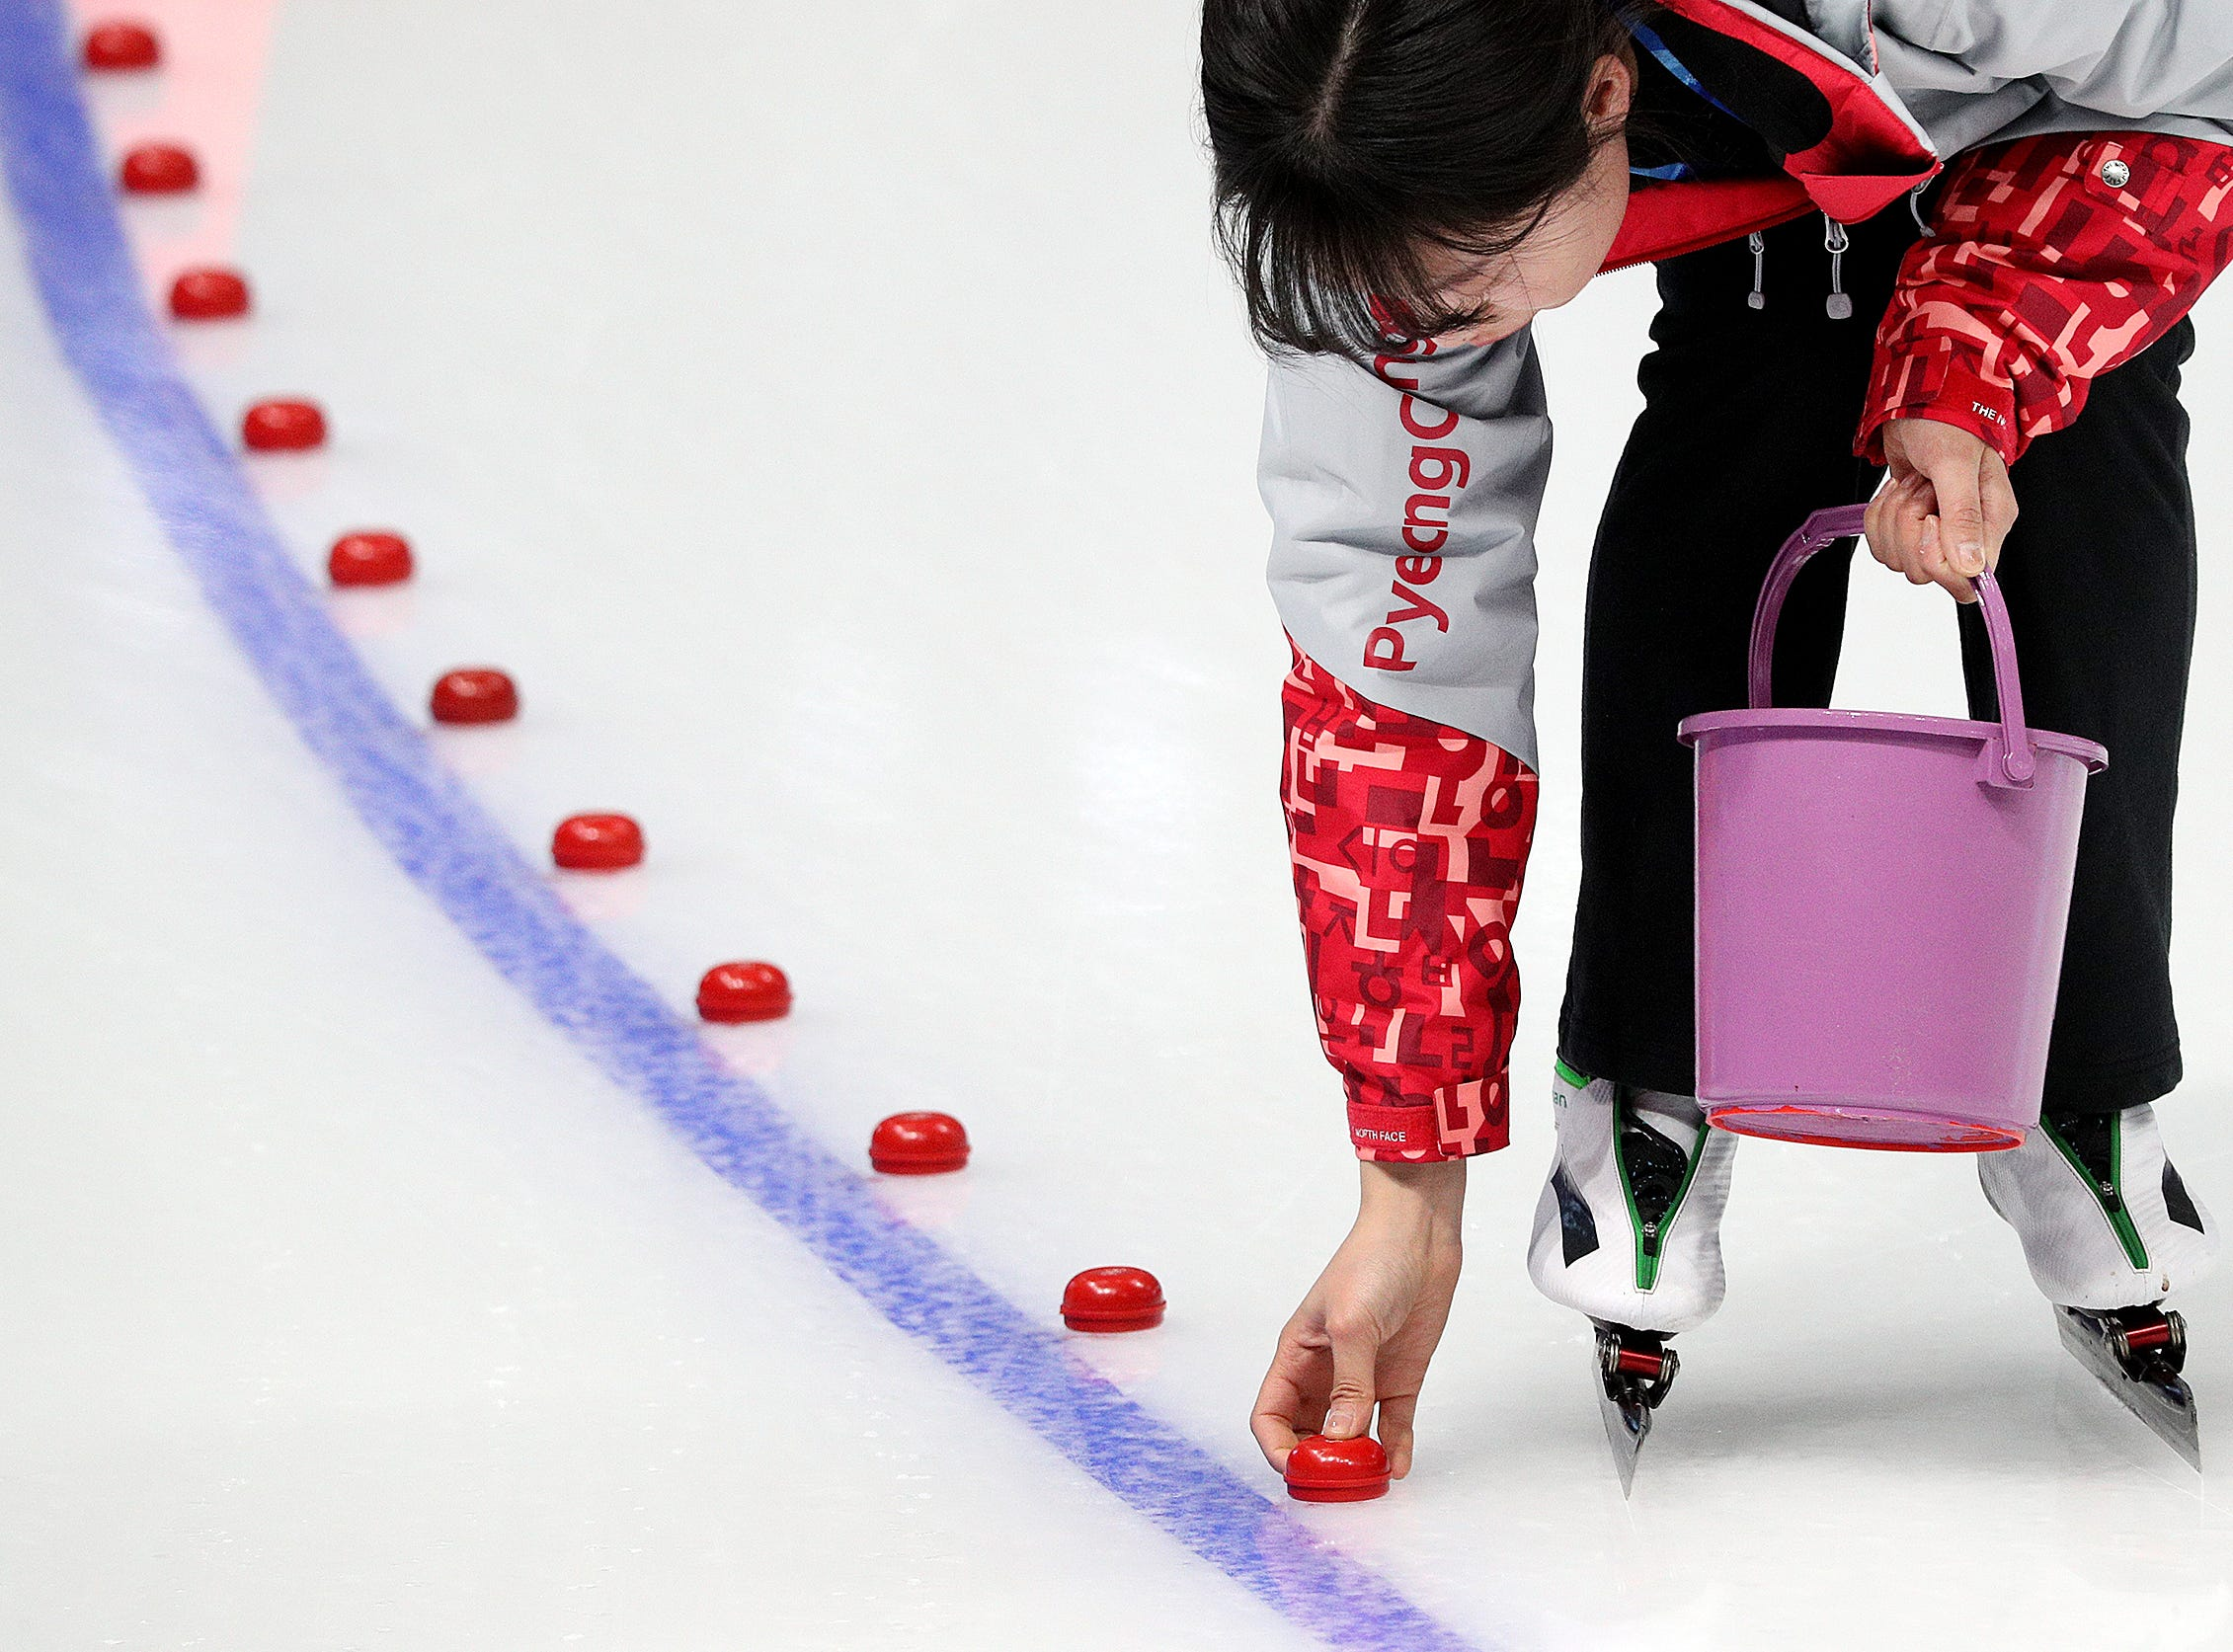 Feb 12, 2018; Pyeongchang, South Korea; An ice track worker puts down the red markers in one of the corners before the start of the Women's 1500km Speed Skating finals at the Pyeongchang 2018 Olympic Winter Games at Gangneung Ice Arena. Mandatory Credit: Matt Kryger-USA TODAY Sports